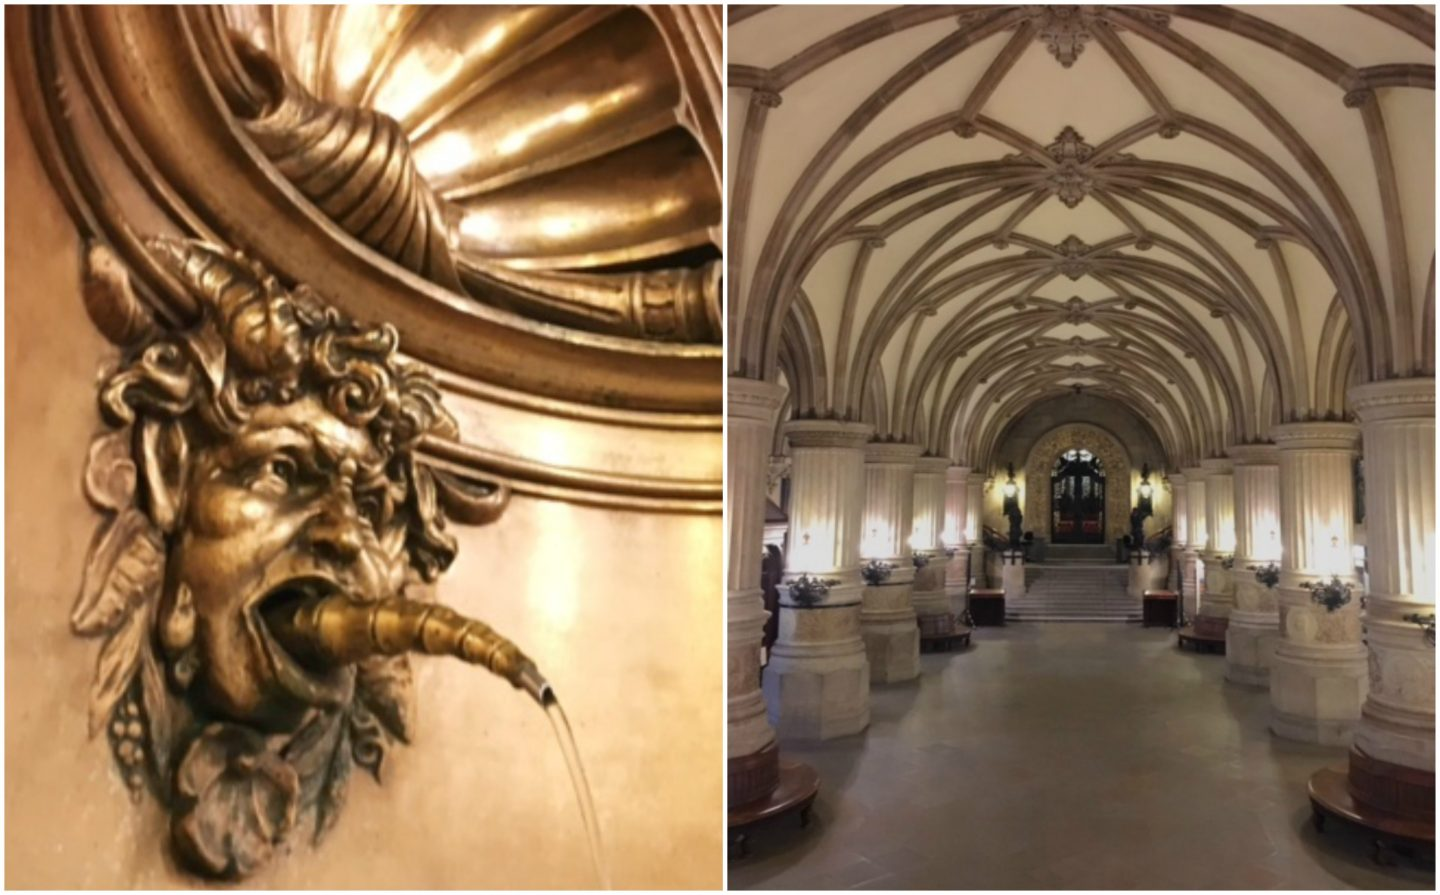 Interior architecture in the Rathaus (Town Hall) - Things to do in Hamburg (